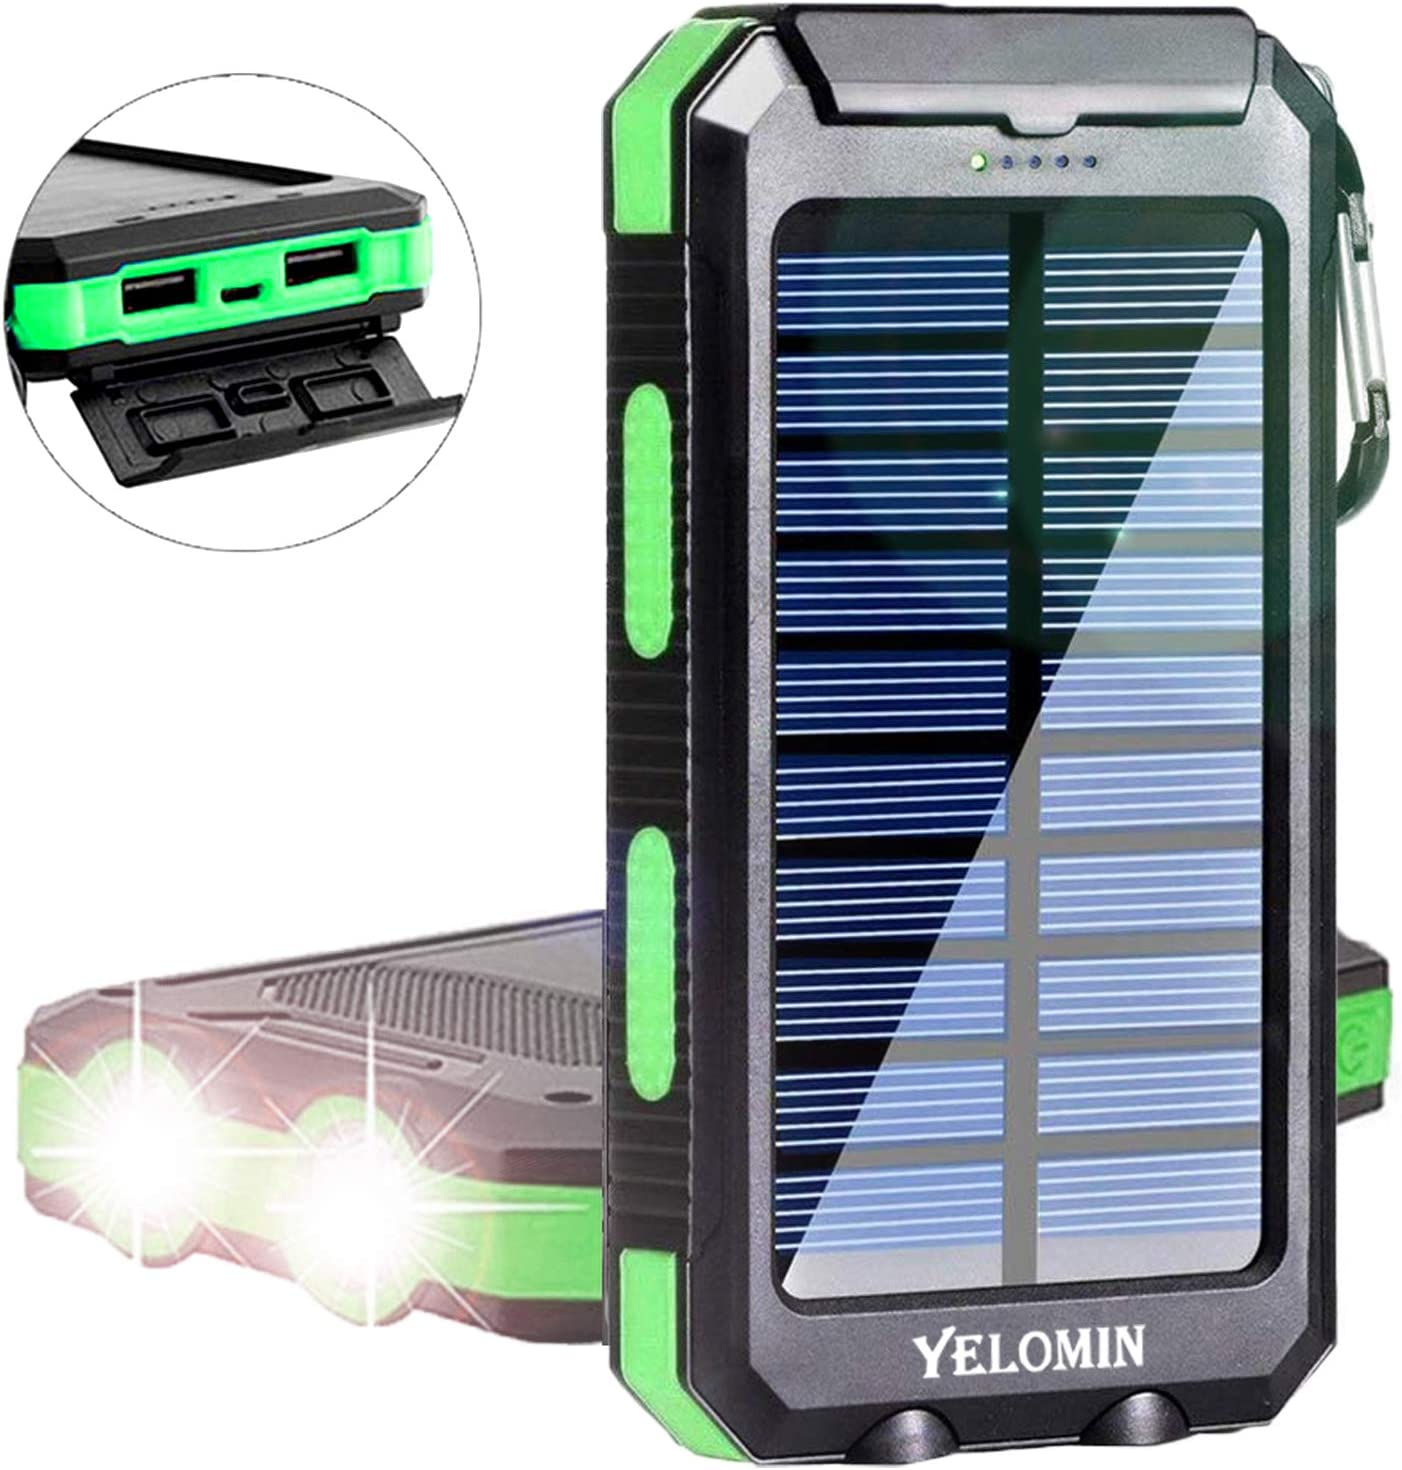 Solar Charger 20000mAh,YELOMIN Portable Outdoor Mobile Power Bank,Camping Travel External Backup Battery Pack Dual USB 5V Outputs 2 LED Light Flashlight with Compass